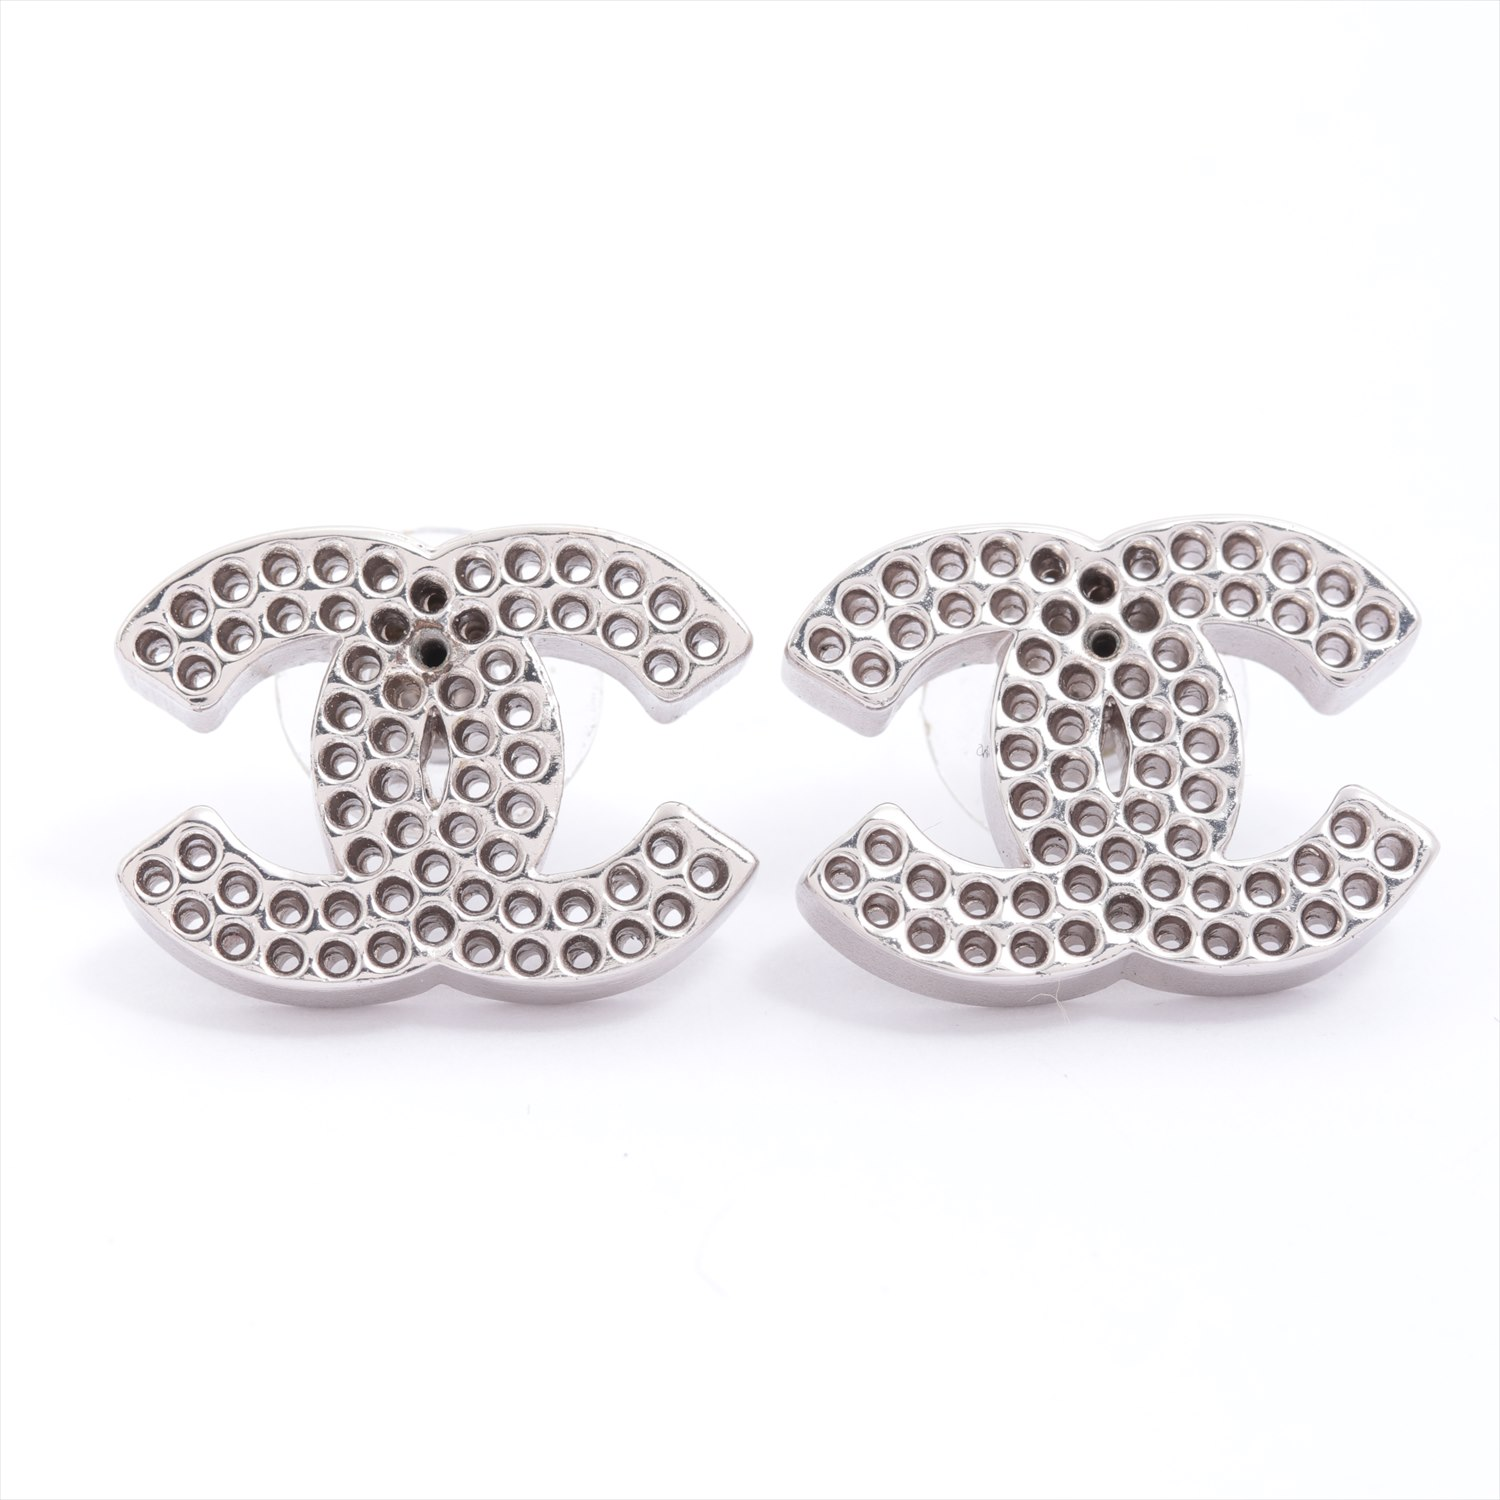 [Used goods] Chanel Coco mark earrings (for both ears) SV Silver